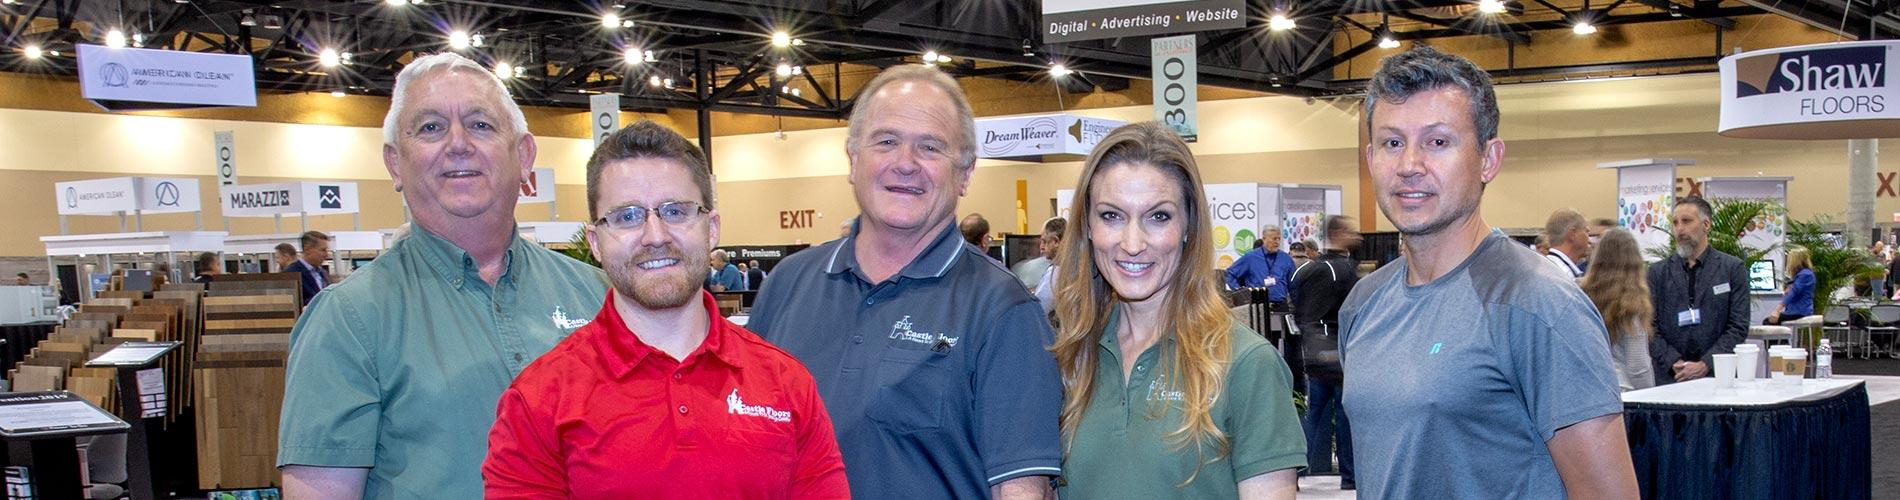 Come visit our expert staff at Castle Floors in Mesa today!